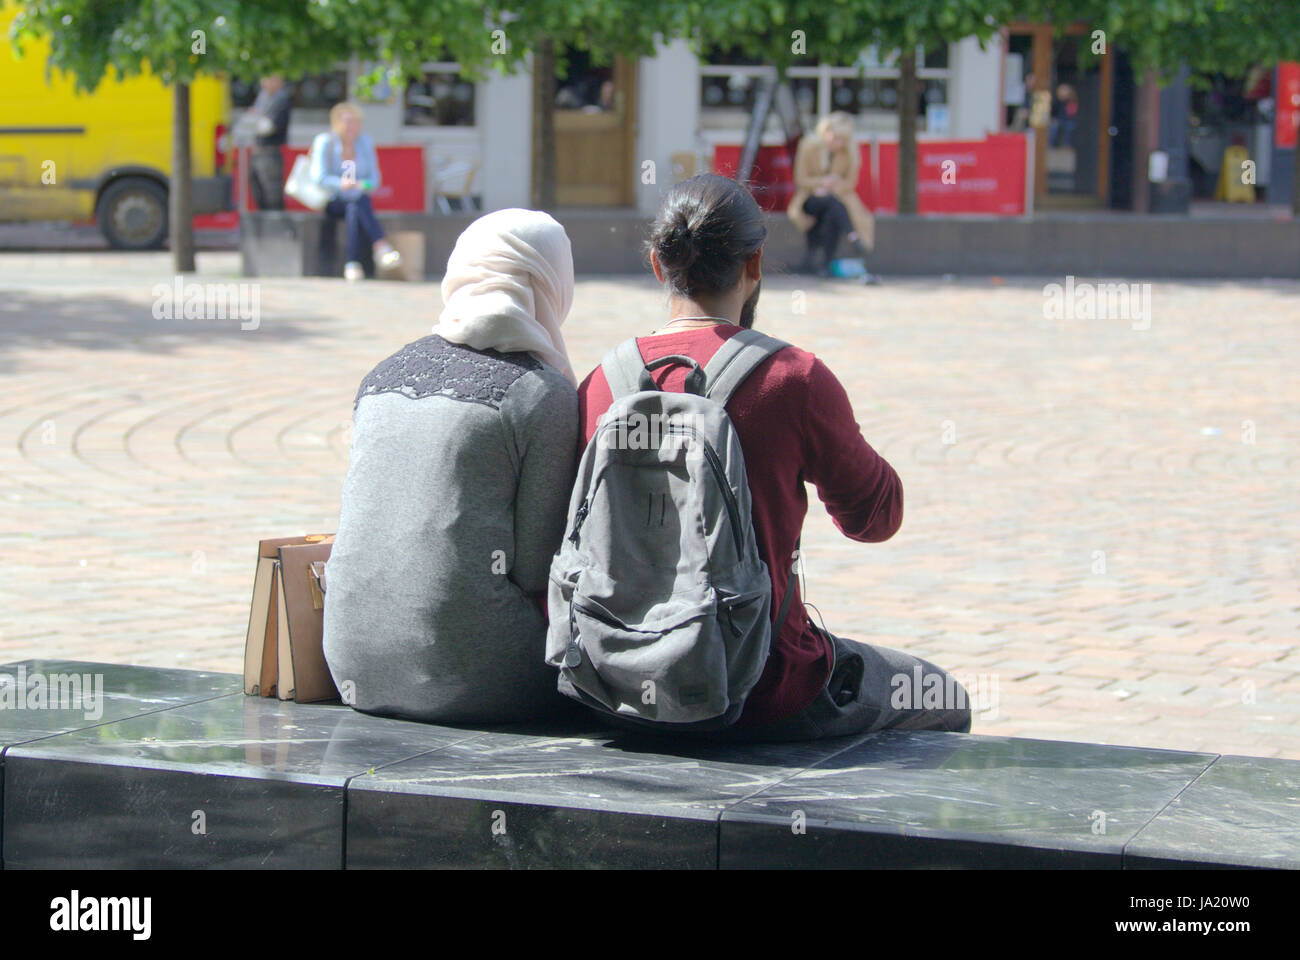 hijab scarf wearing Muslim on British street - Stock Image